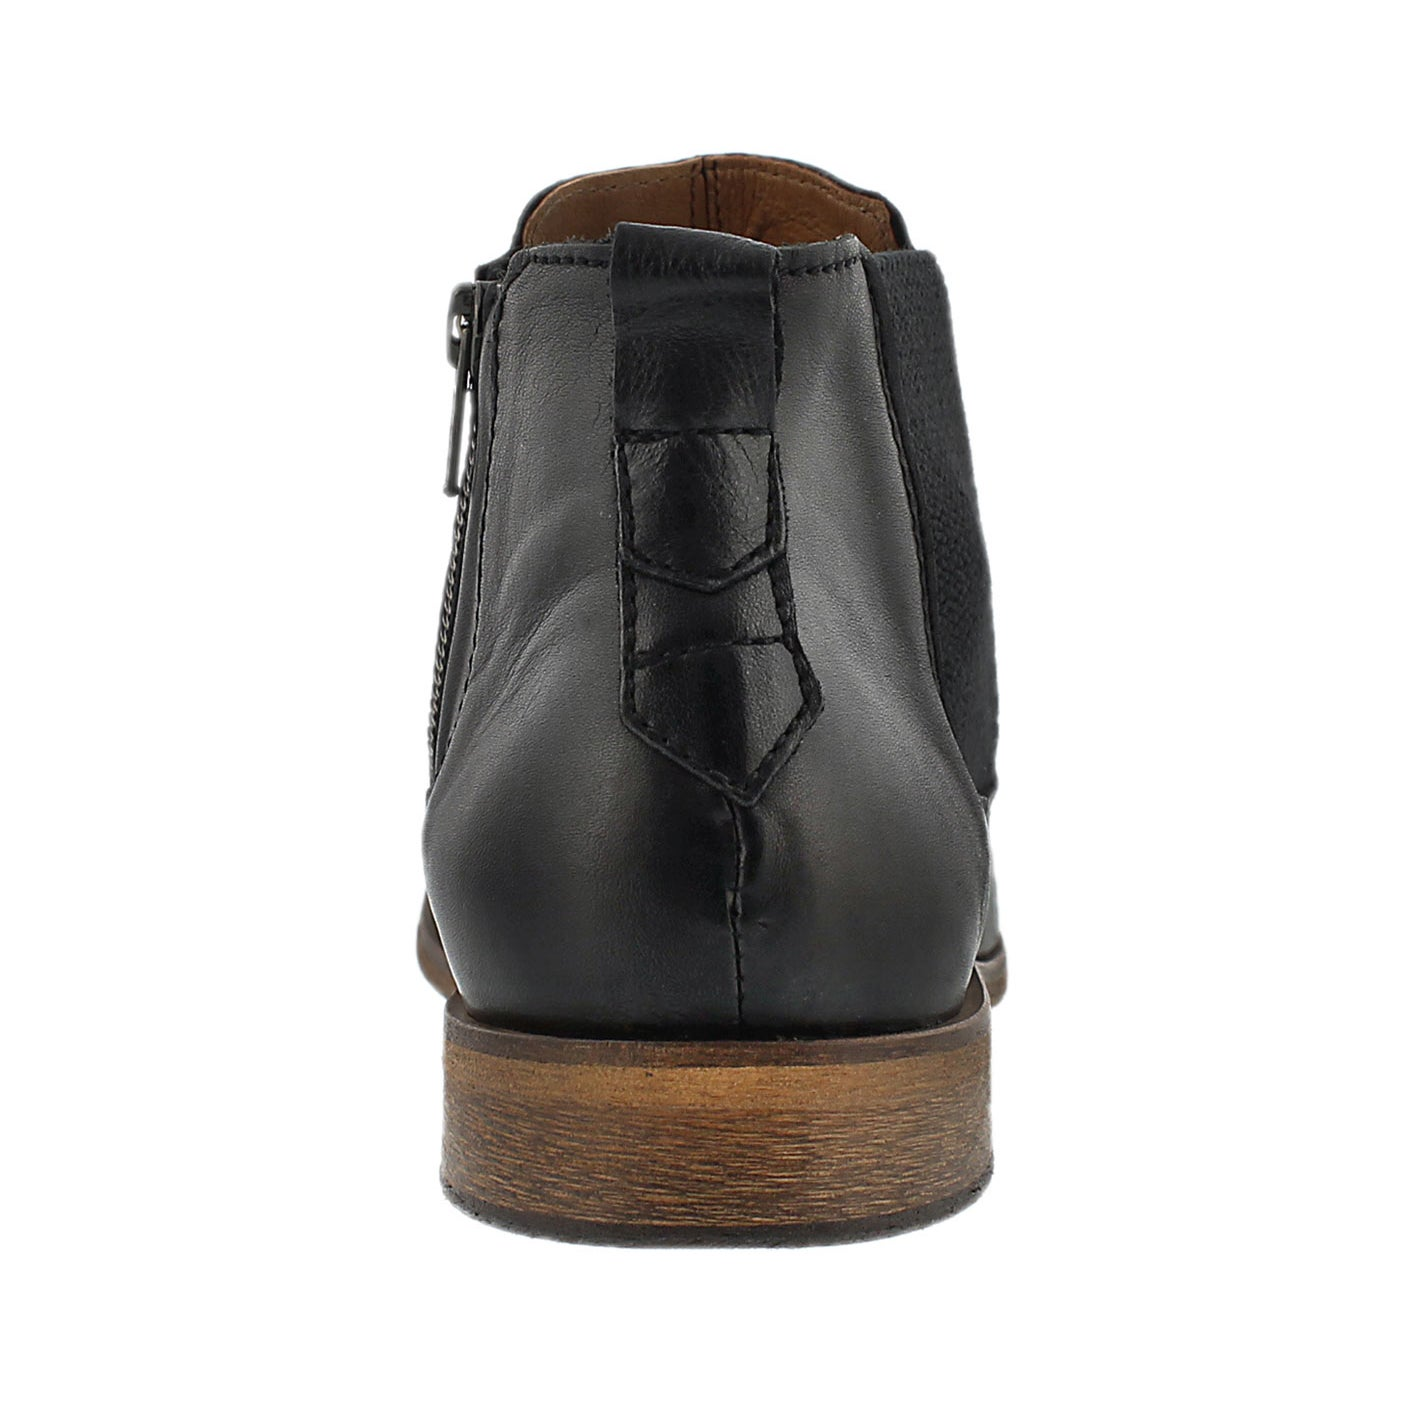 Mns Jaden black slip on ankle boot